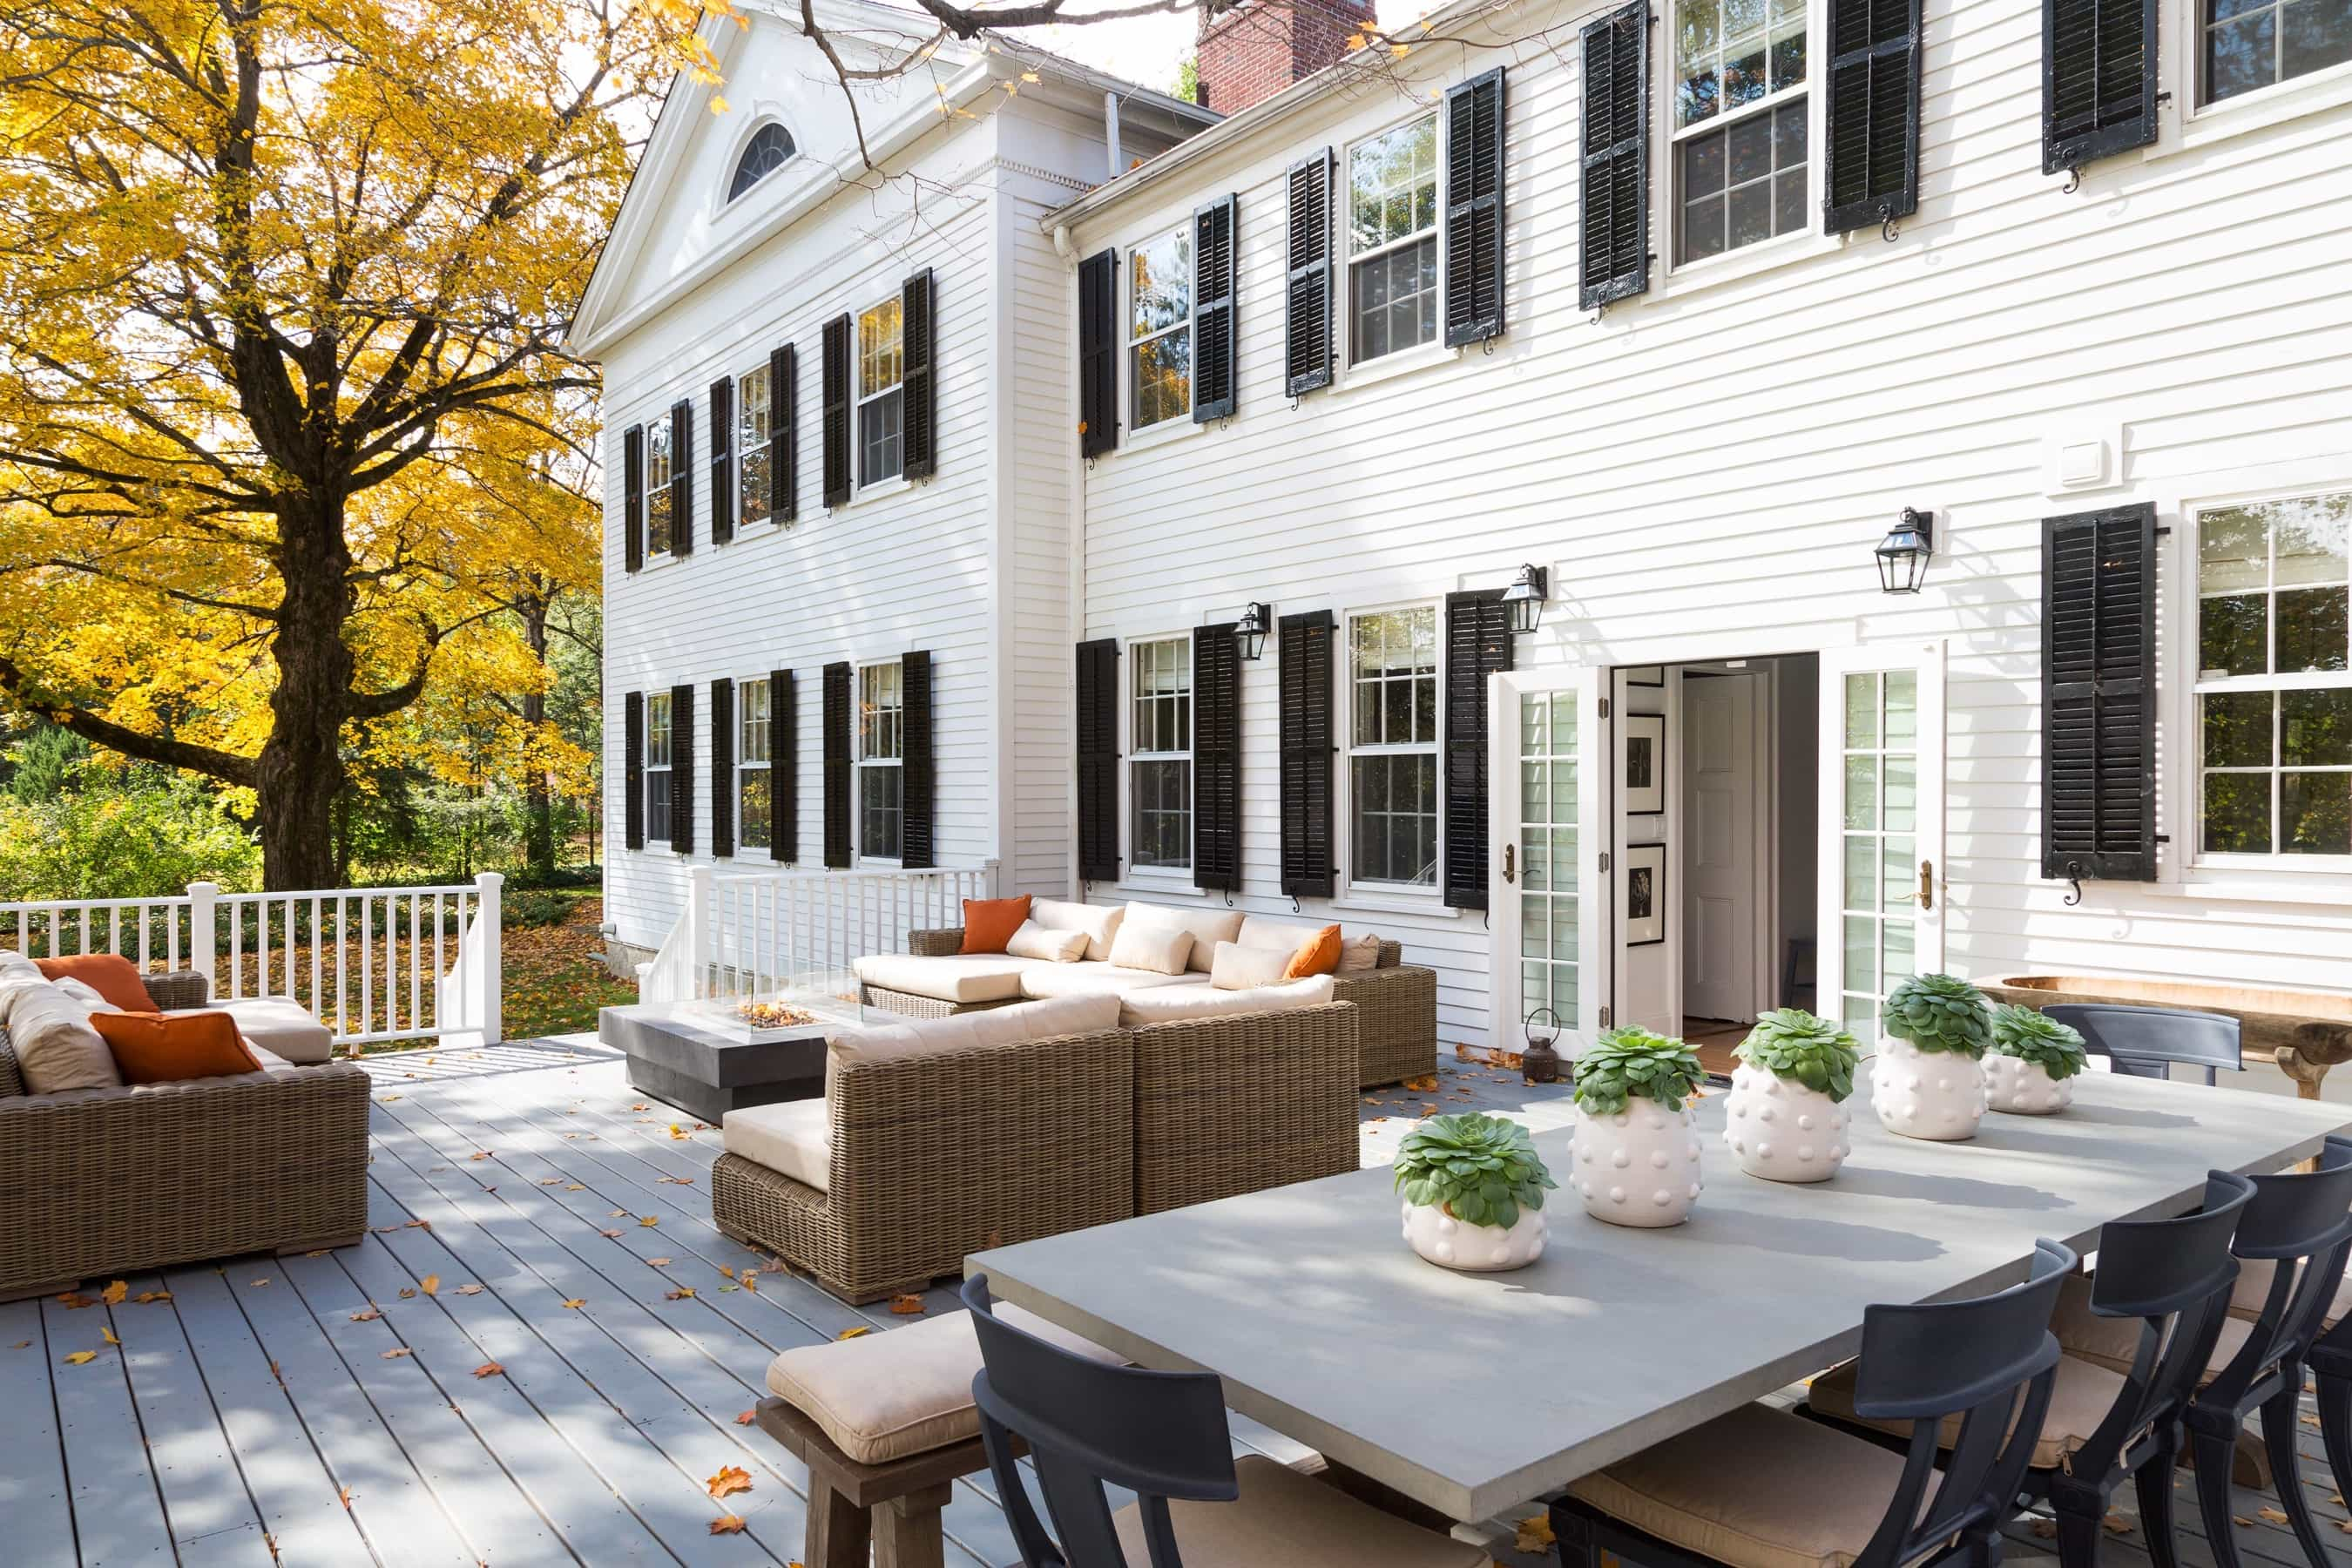 Featured Image of White Colonial Home With Large Back Deck